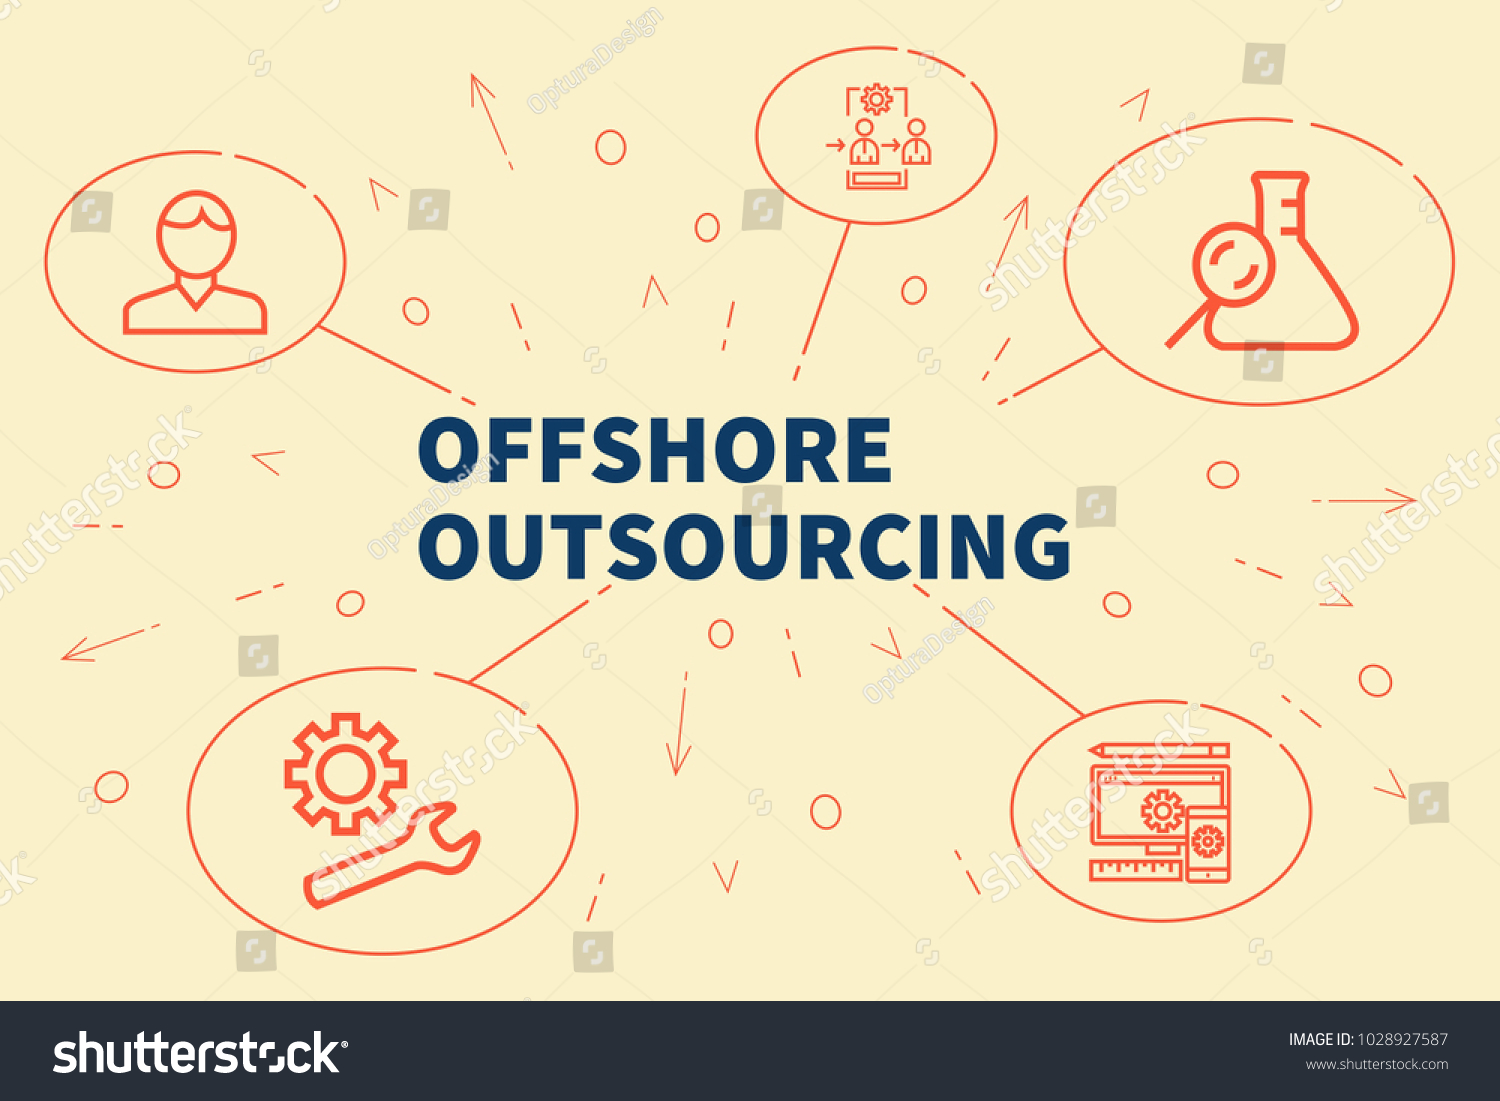 Business Illustration Showing Concept Offshore Outsourcing Stock  Illustration 1028927587